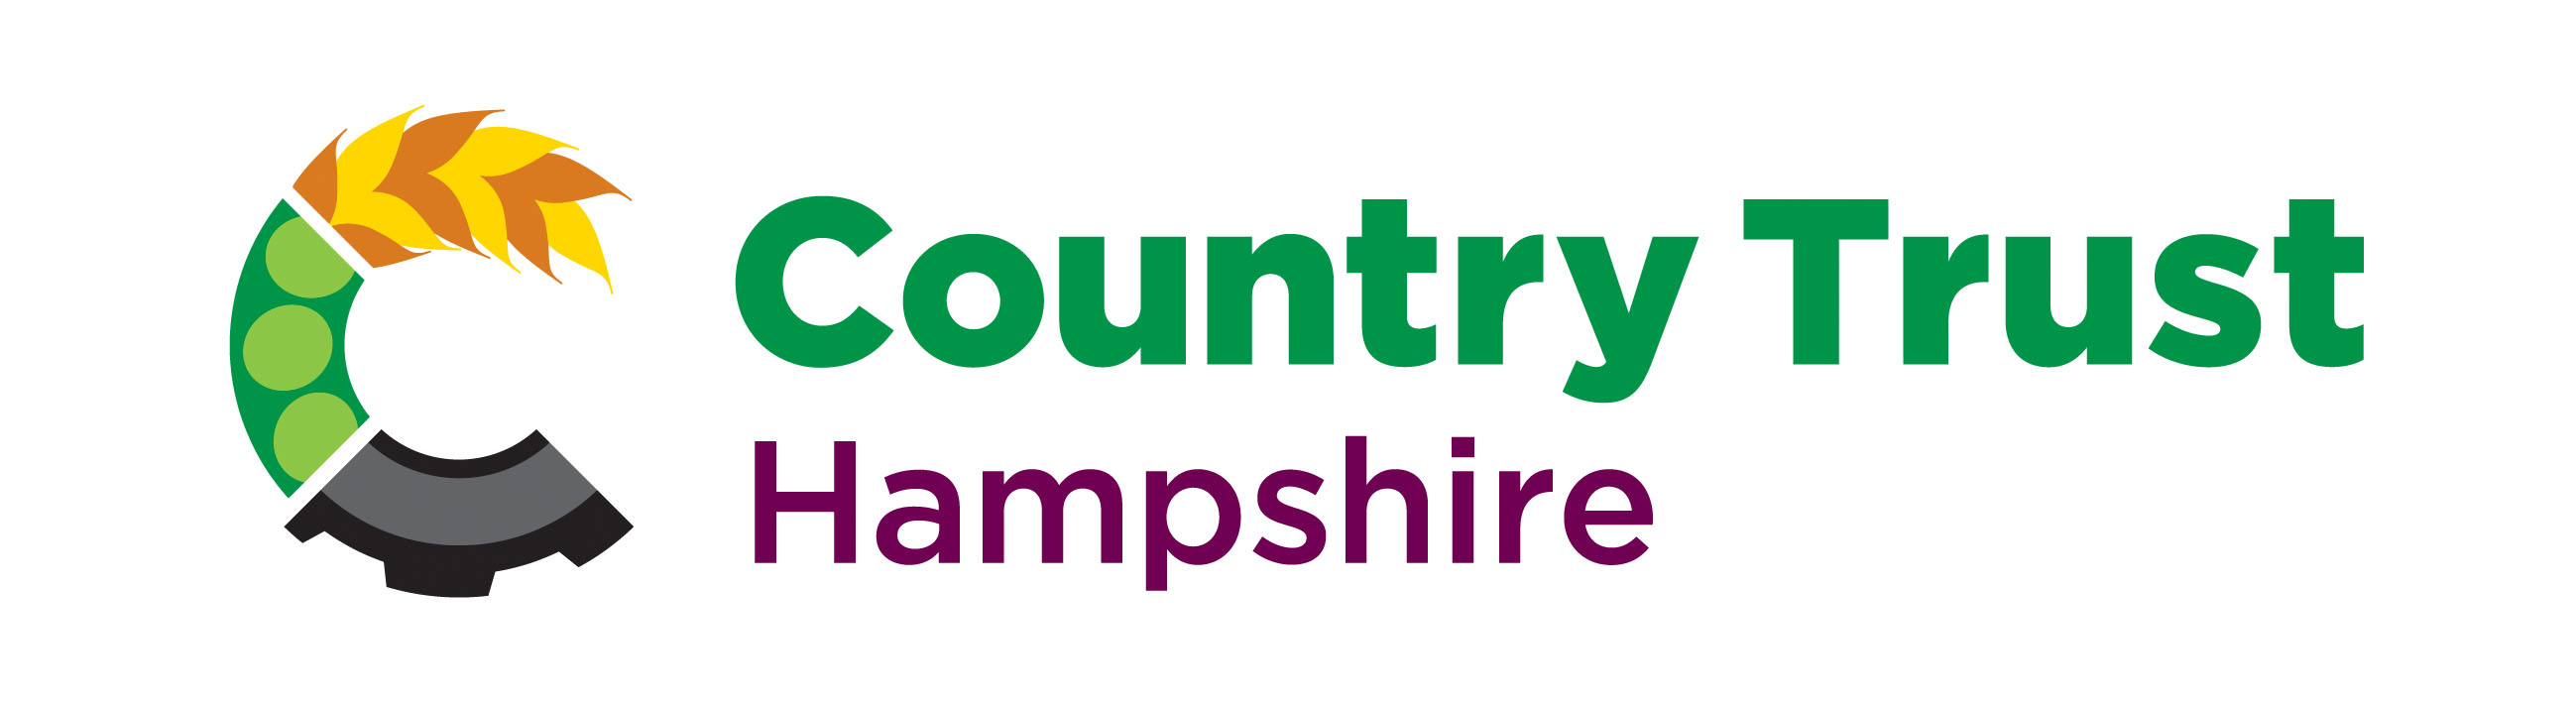 The Country Trust and New Forest Agricultural Show society are looking for their next Food Discovery School!